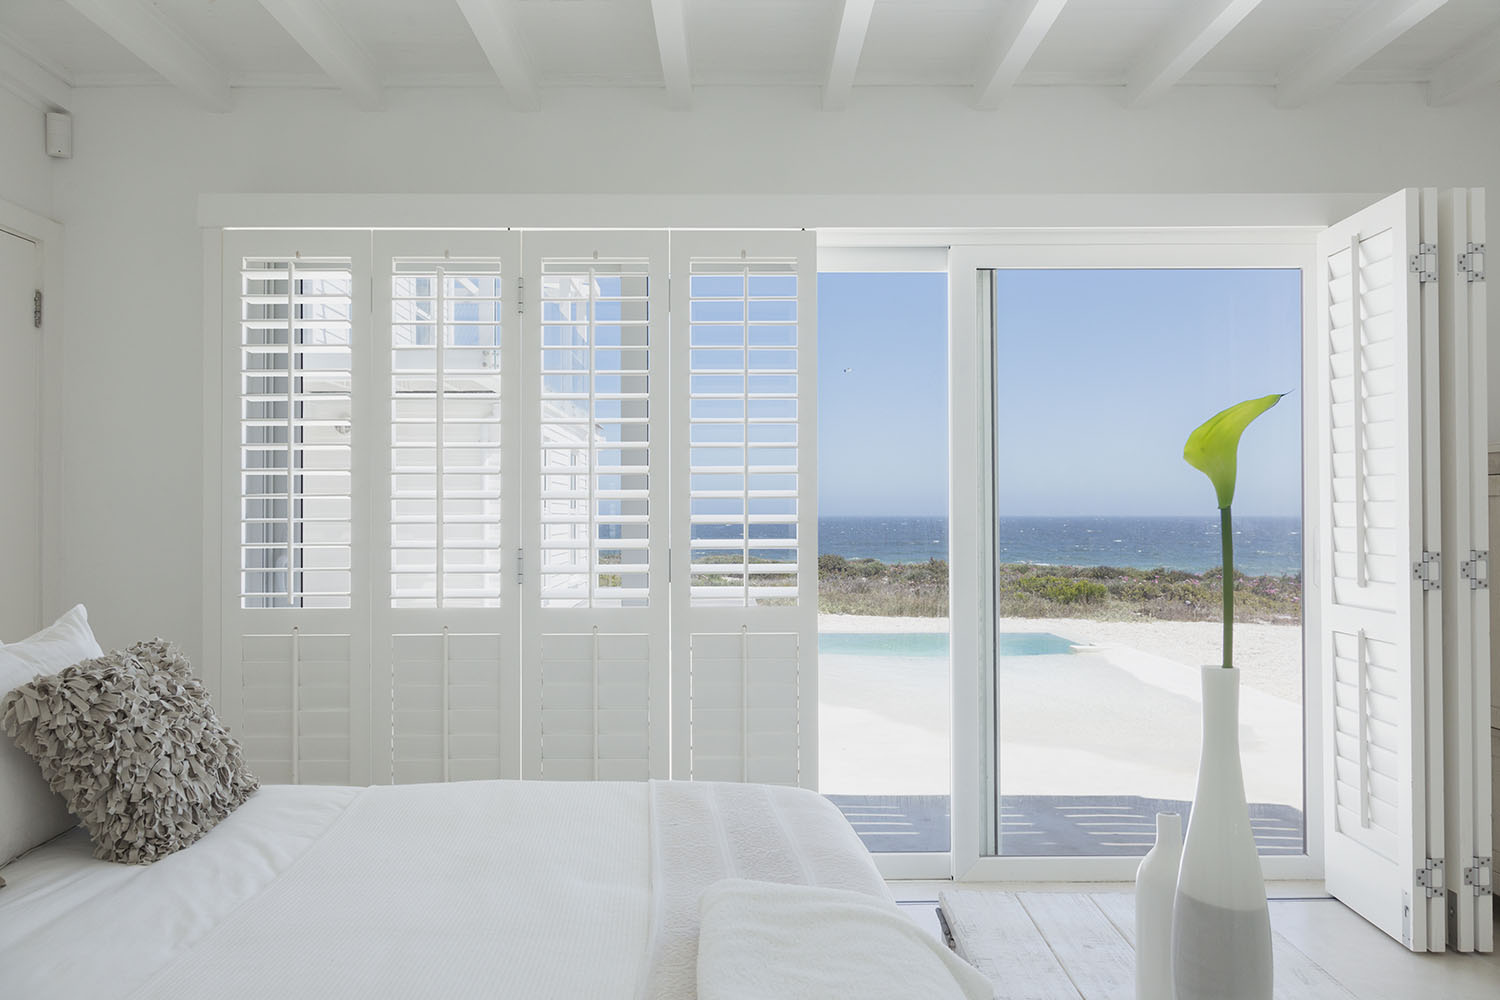 15 Reasons Why You Should Use Plantation Shutters On Your